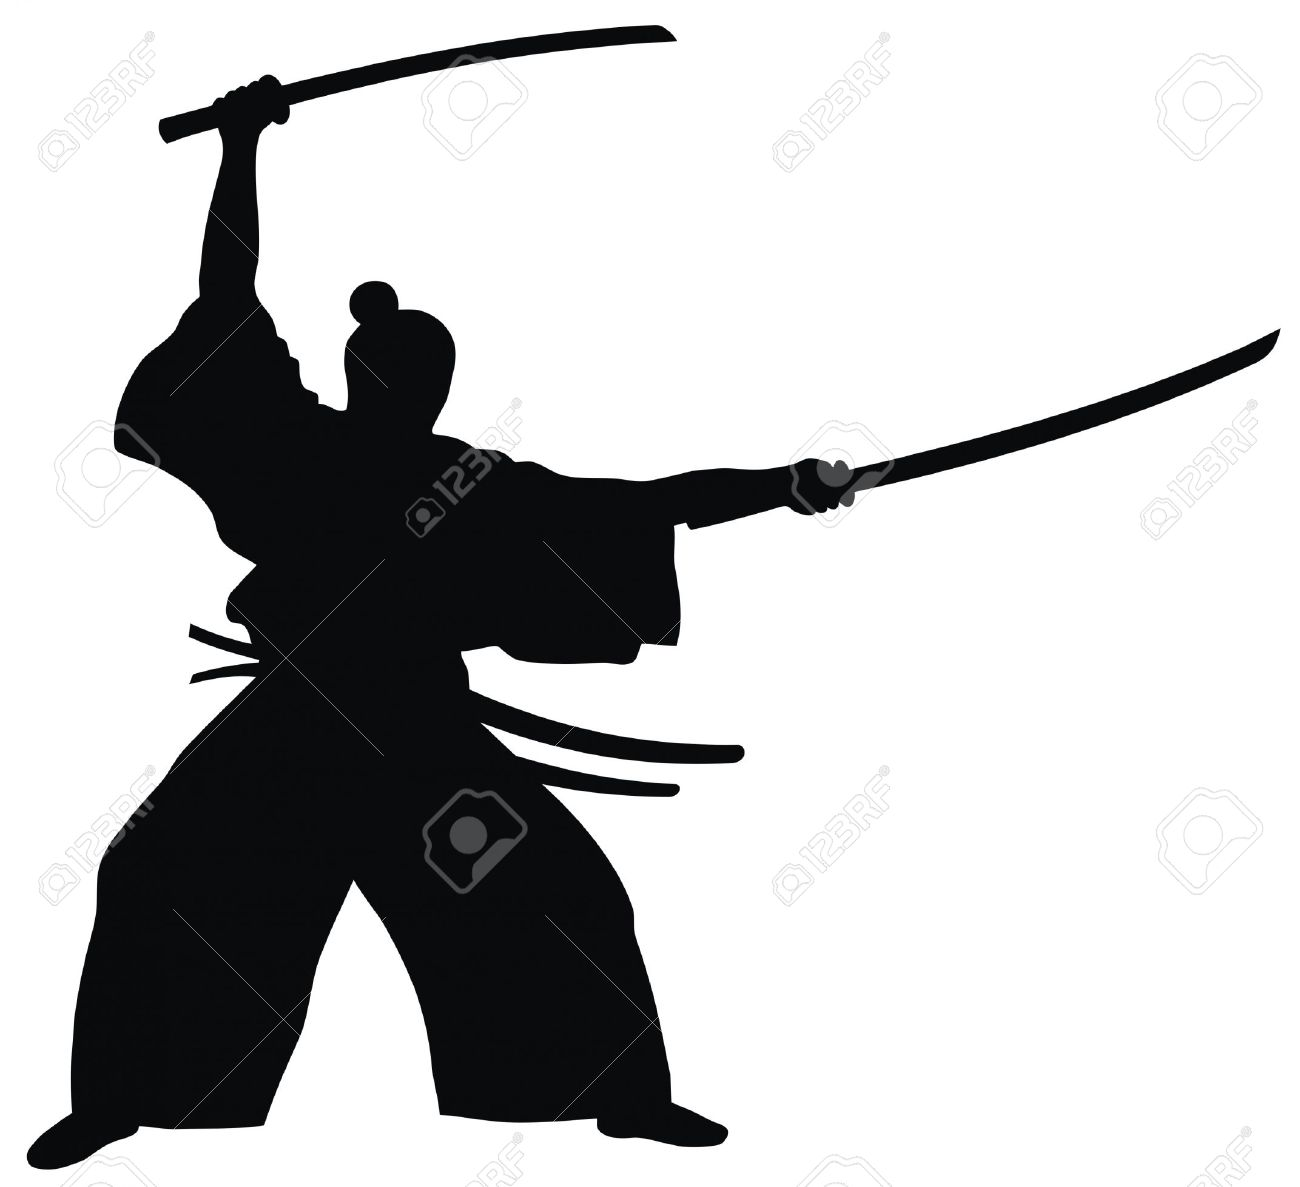 Abstract Vector Illustration Of Samurai Royalty Free Cliparts.